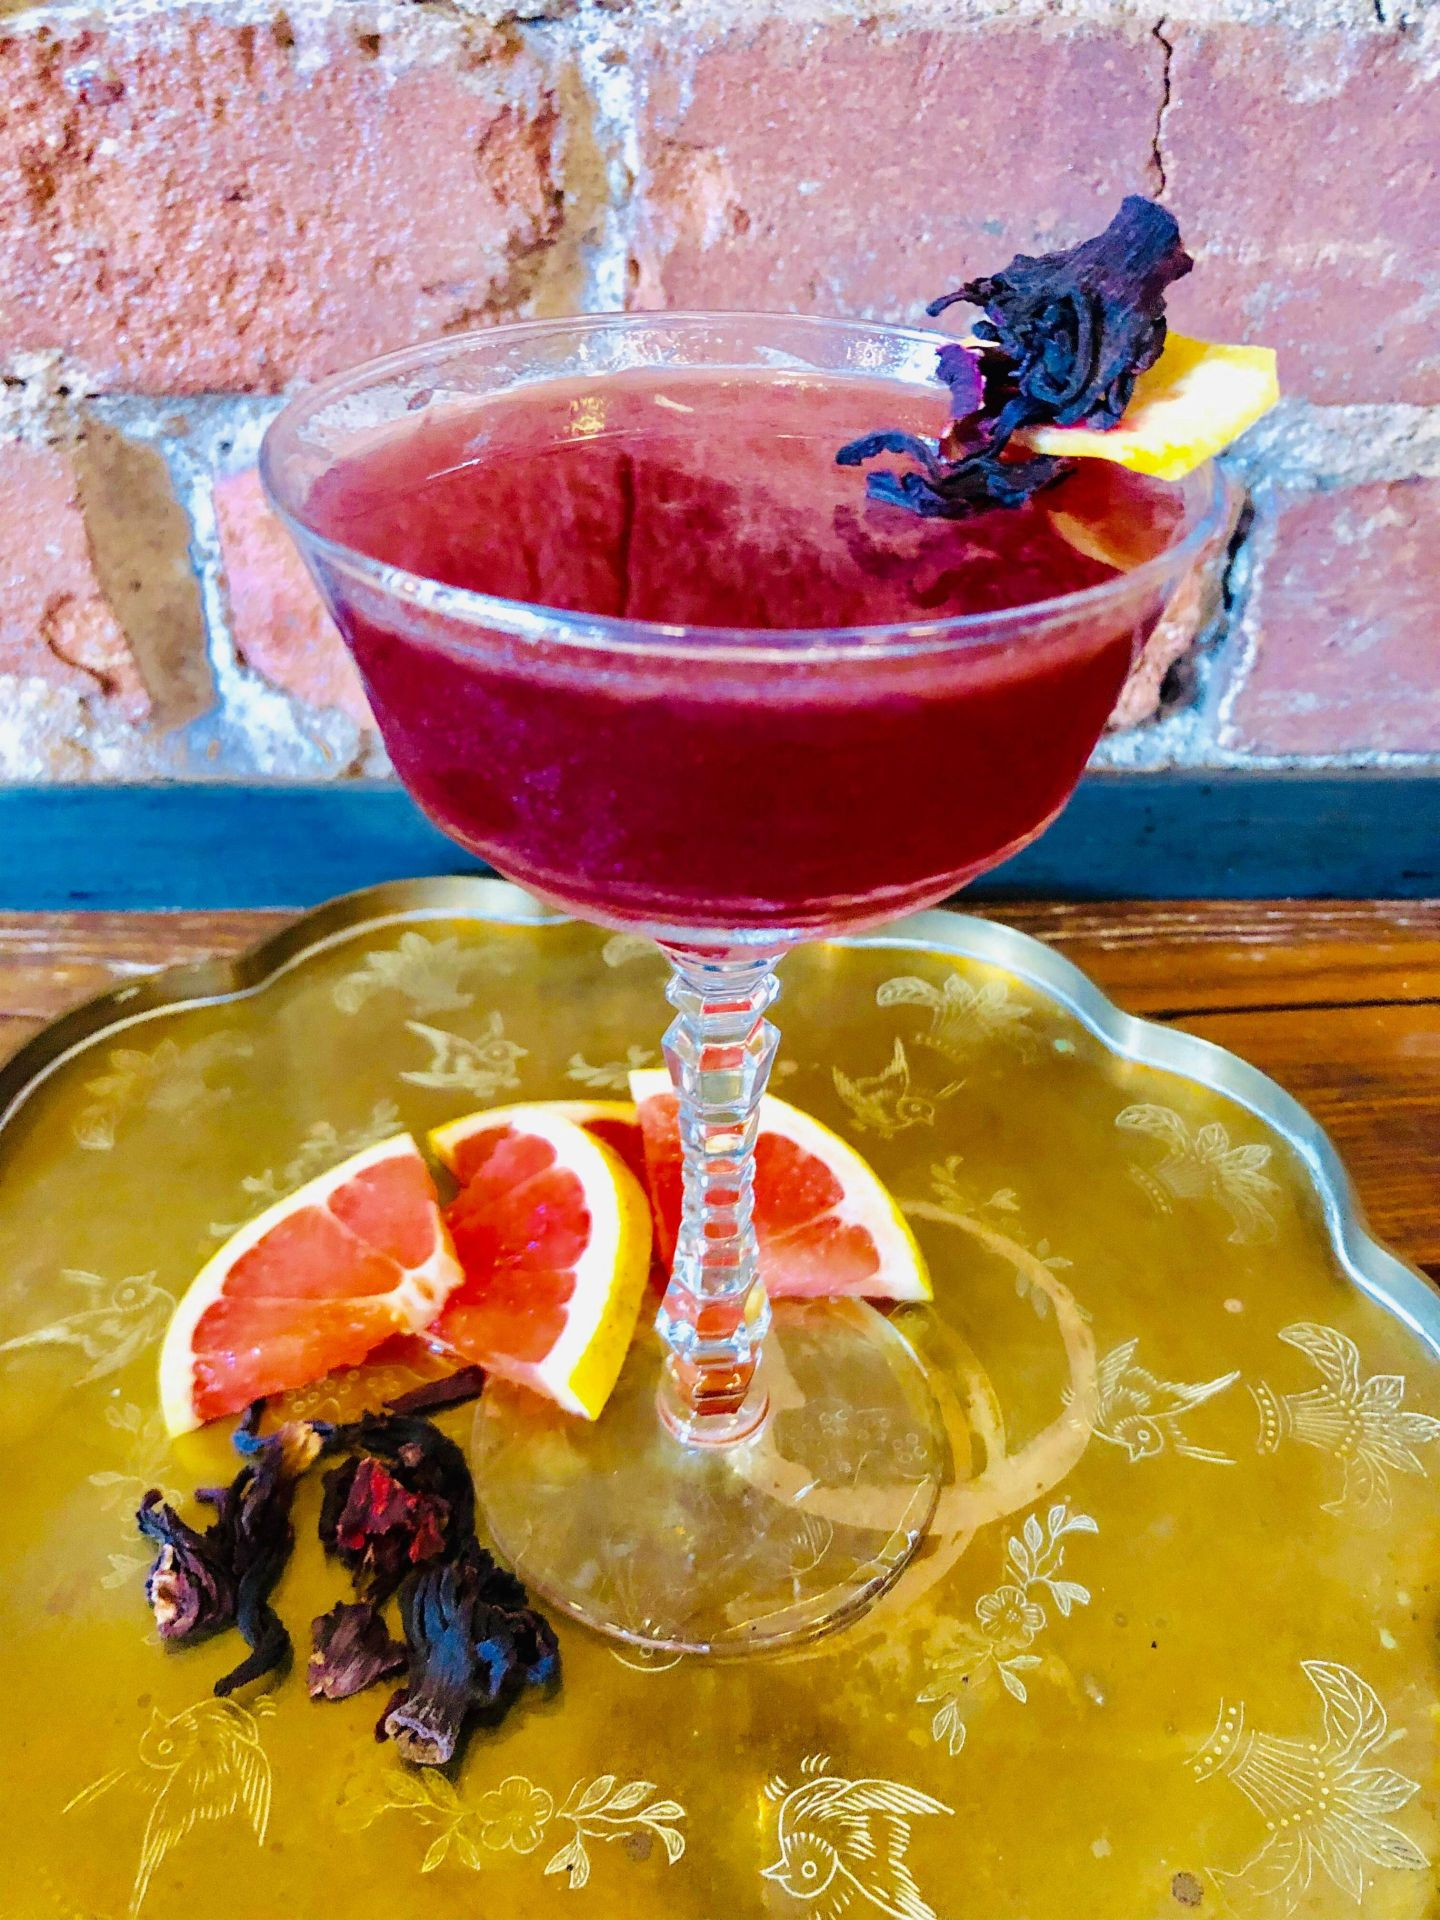 58766107_415384209254099_7189129732804313088_n-1440x1920 Three Southern Barkeeps (Re)Imagine Cocktails fit for a Kentucky Derby Celebration